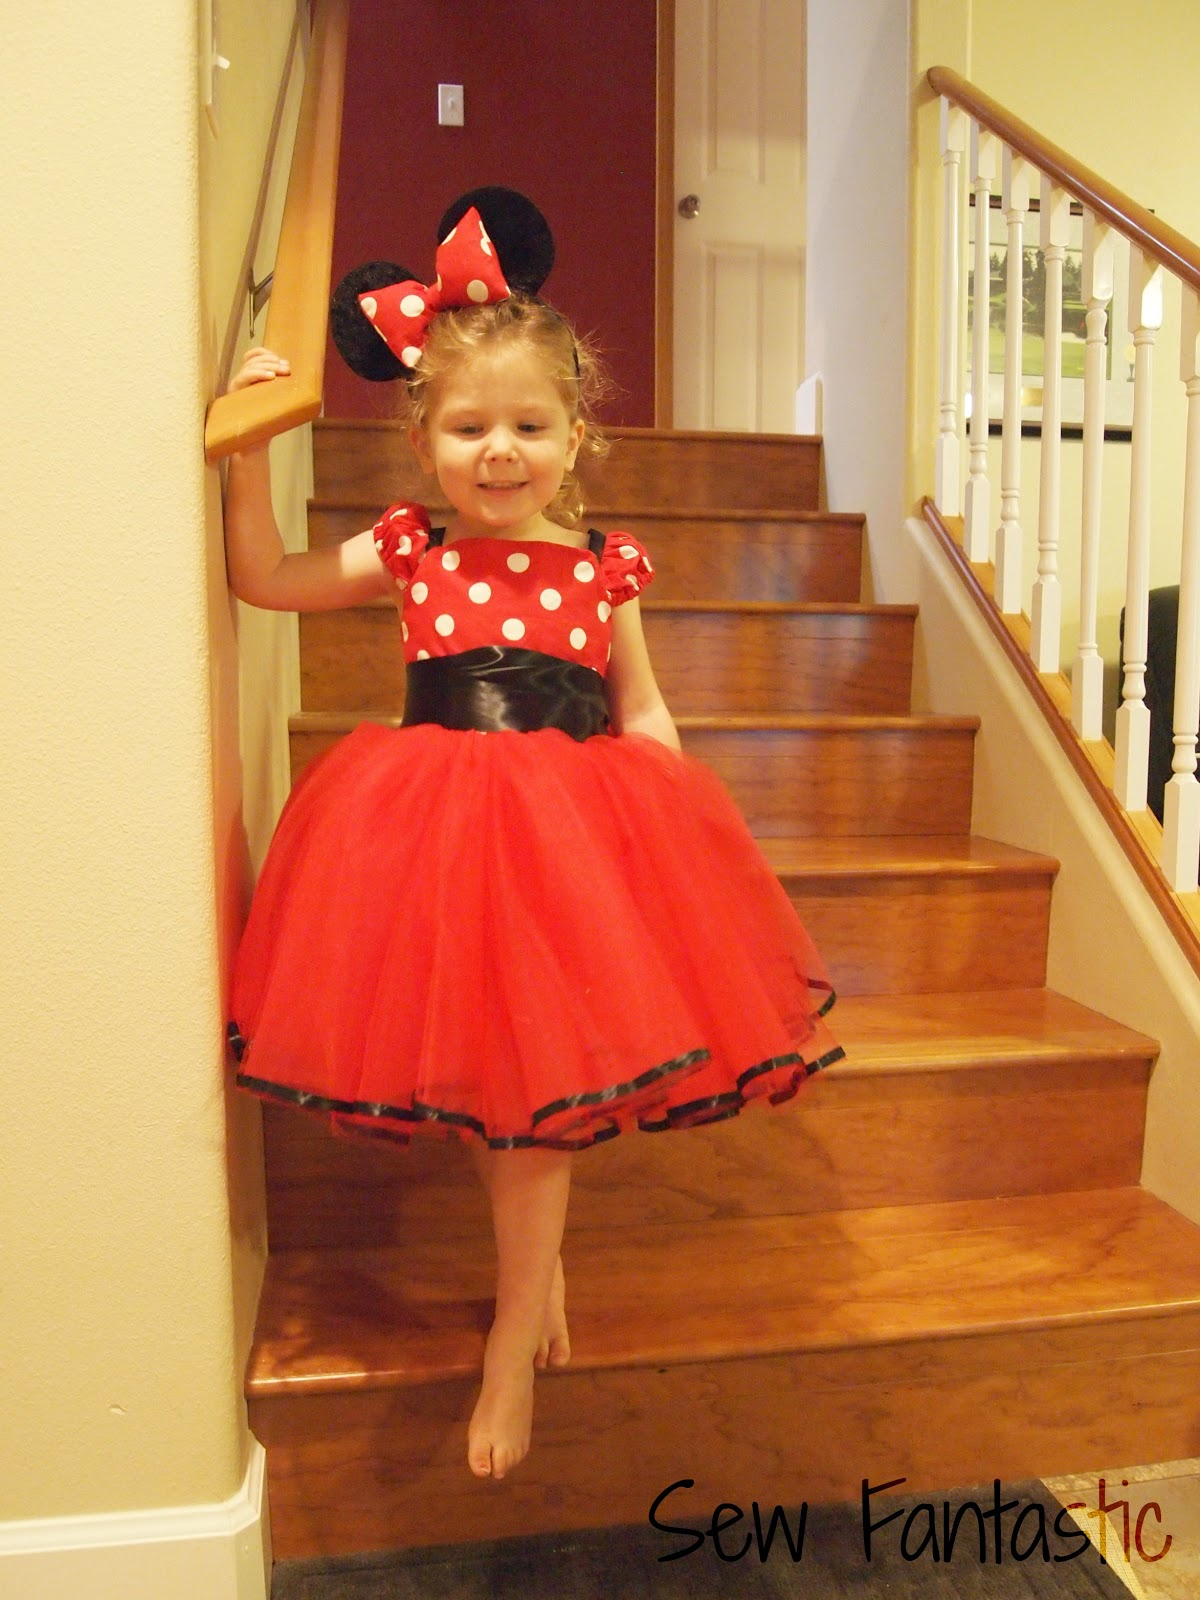 sc 1 st  Sew Fantastic & Sew Fantastic: Minnie Mouse Miracle